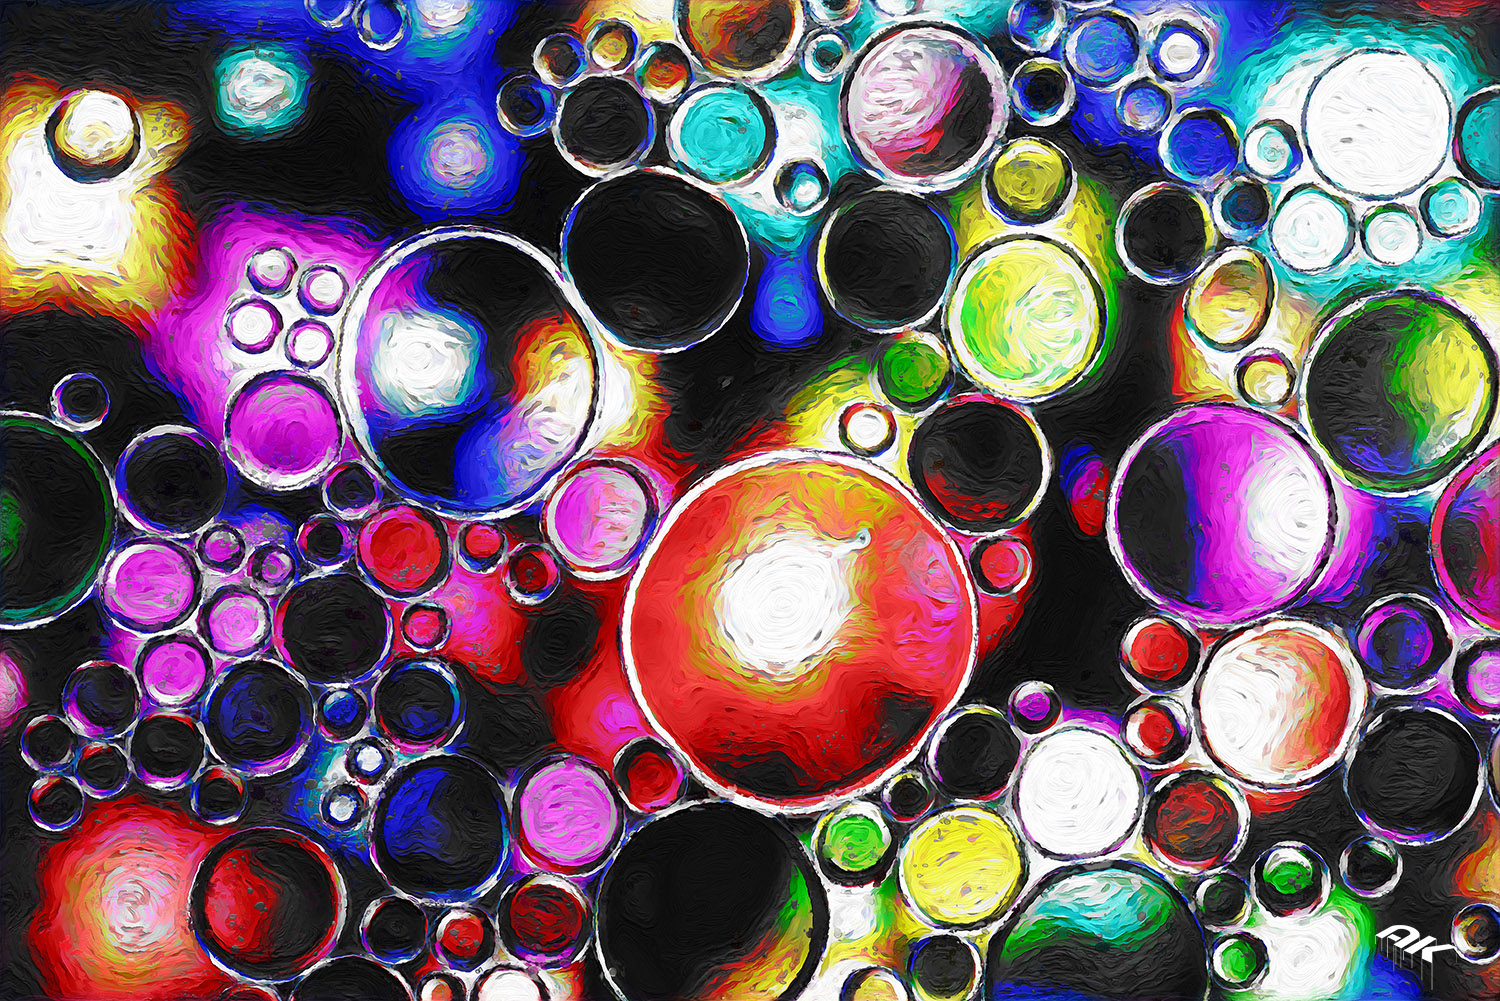 bright oil bubbles in water with abstract pattern